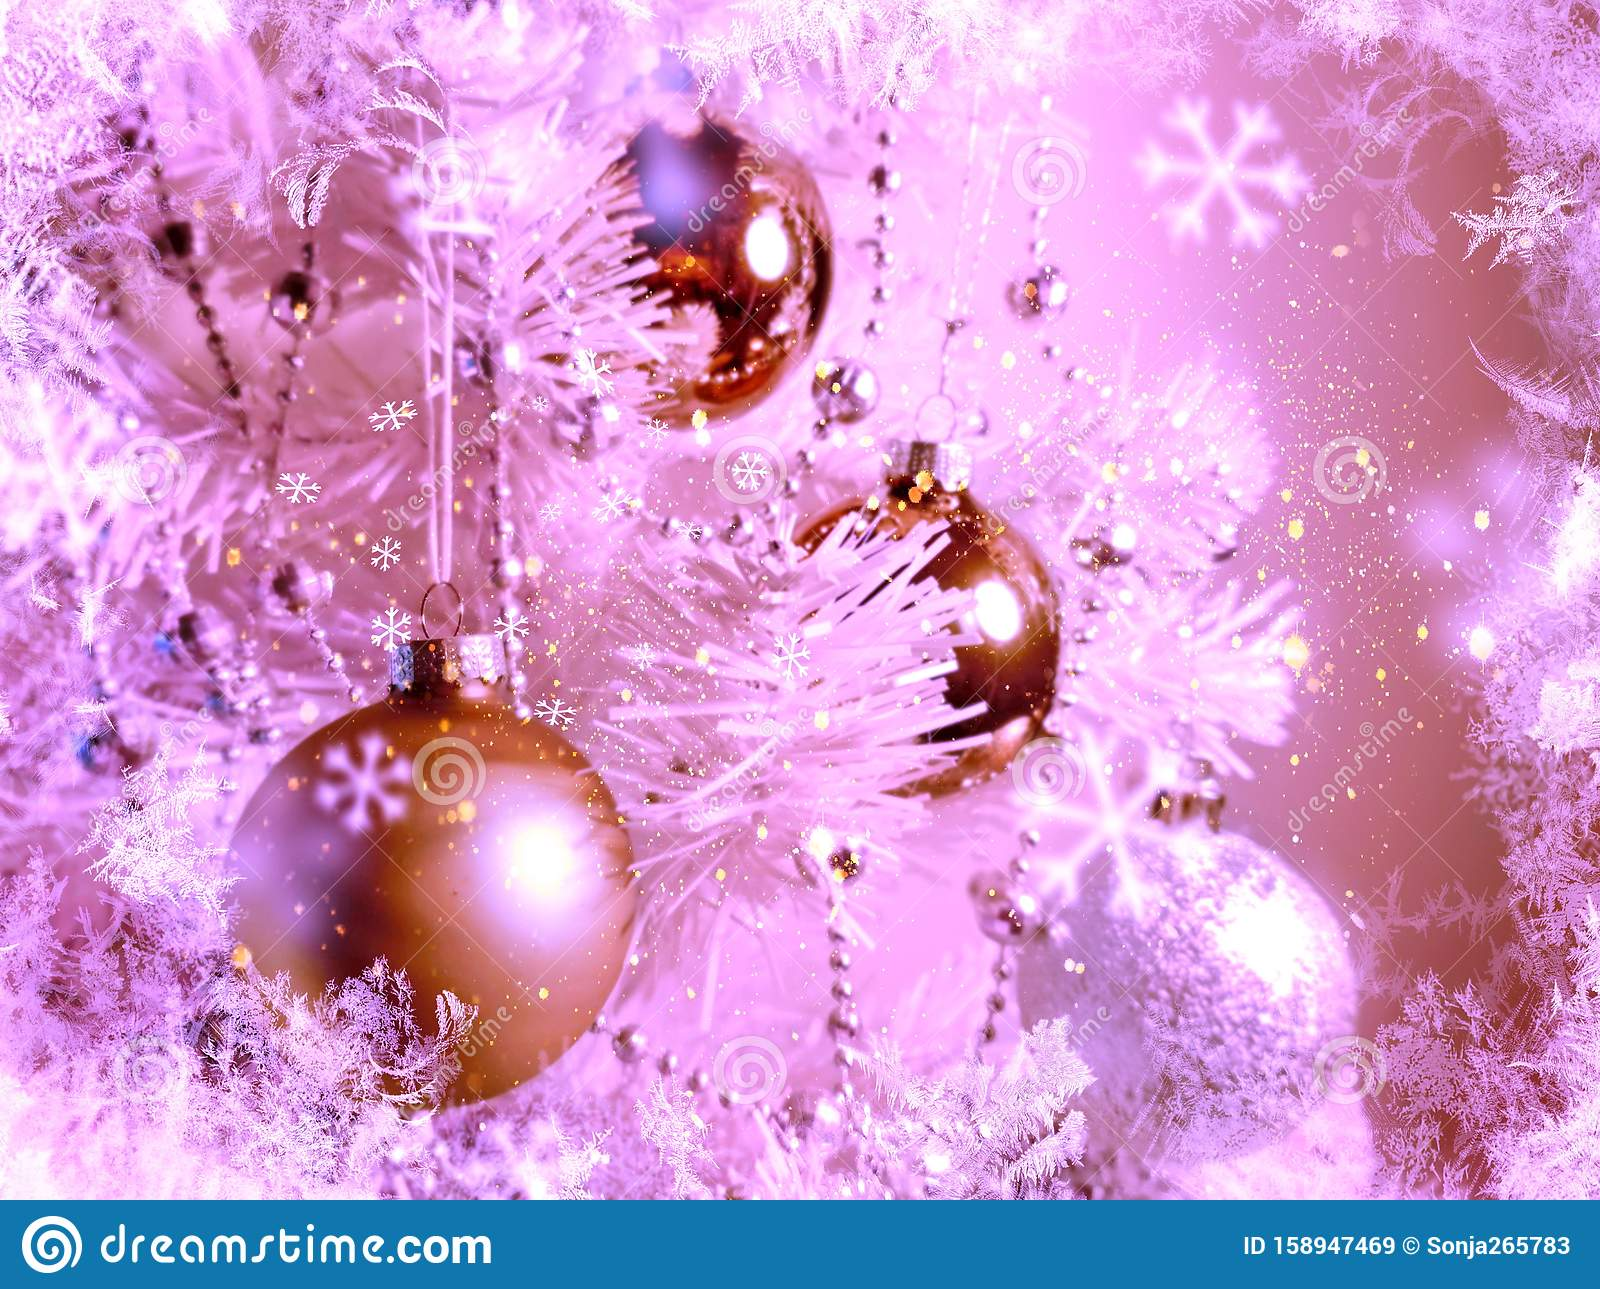 christmas wallpaper holiday white gold silver red green balls snowflakes light decoration new year blurry lights back modern 158947469